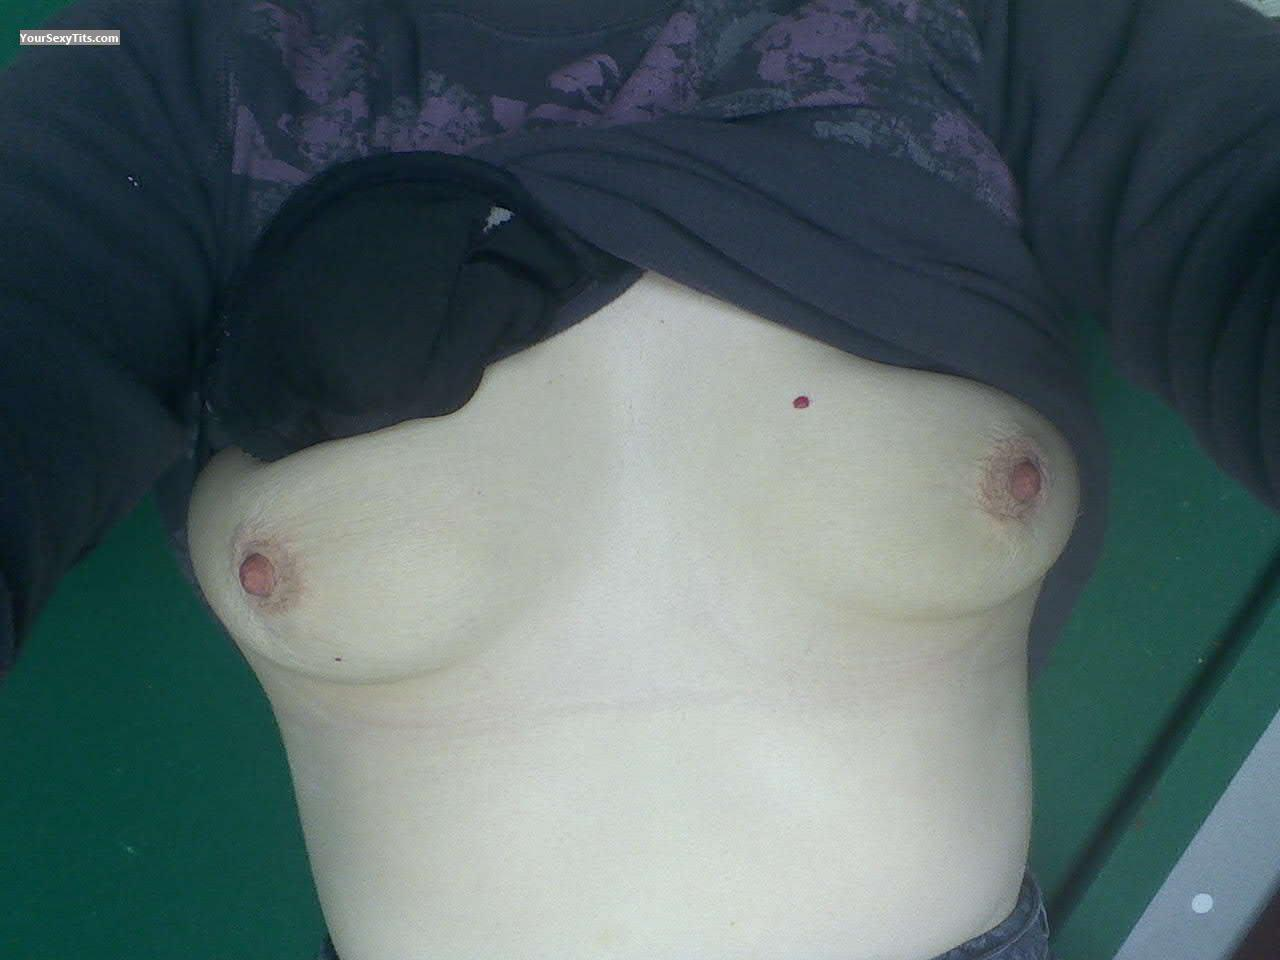 Tit Flash: My Small Tits - Lilmomma from United States